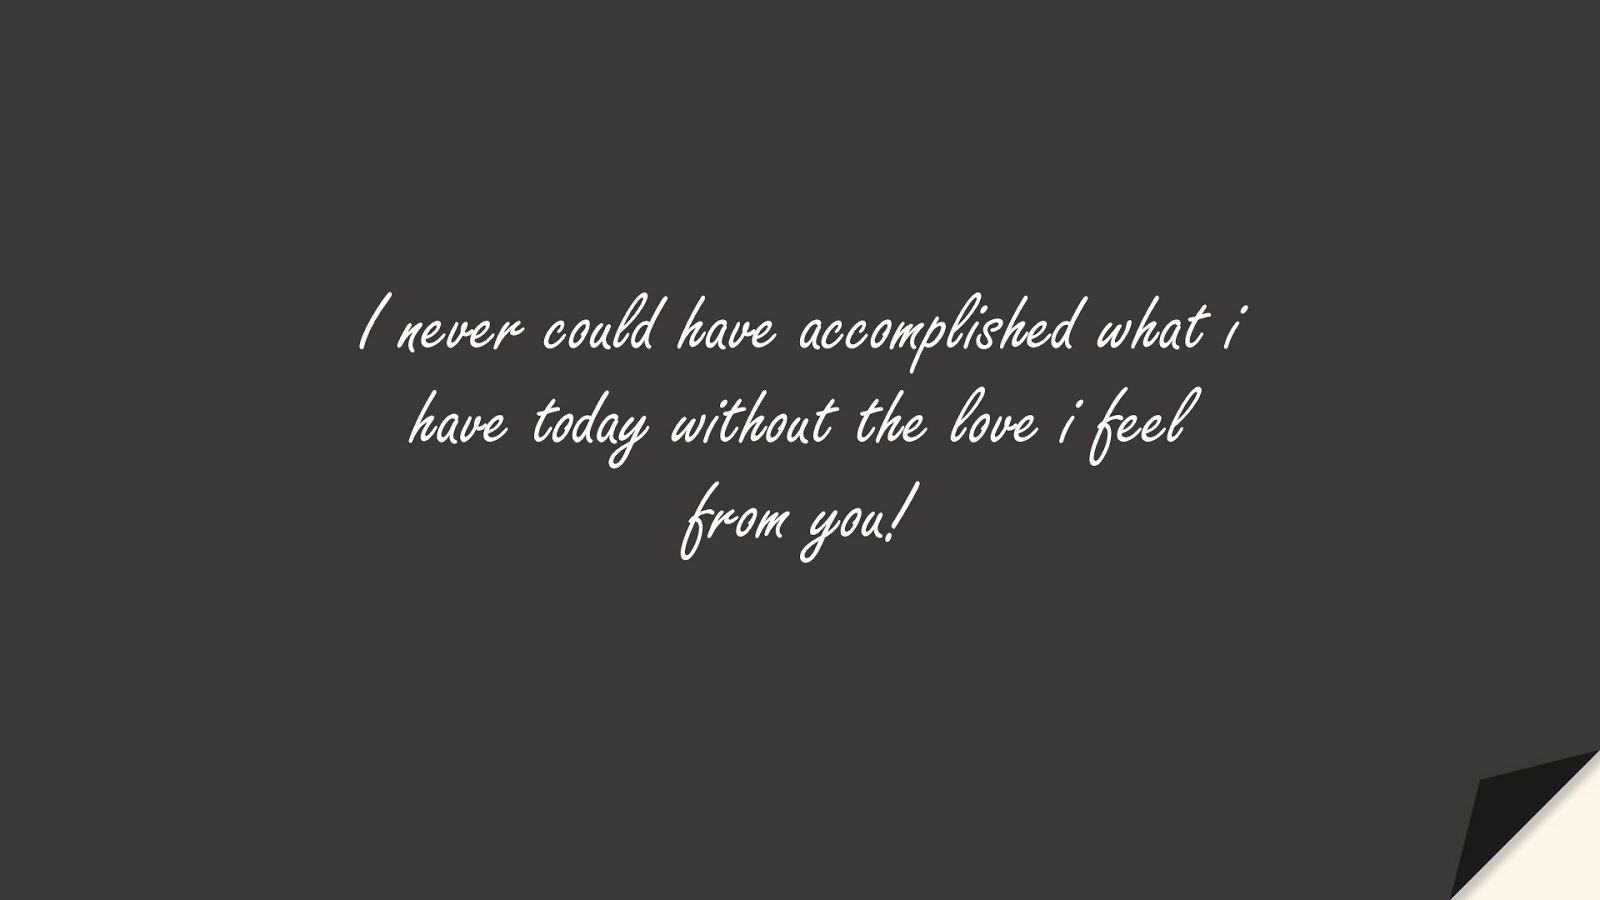 I never could have accomplished what i have today without the love i feel from you!FALSE